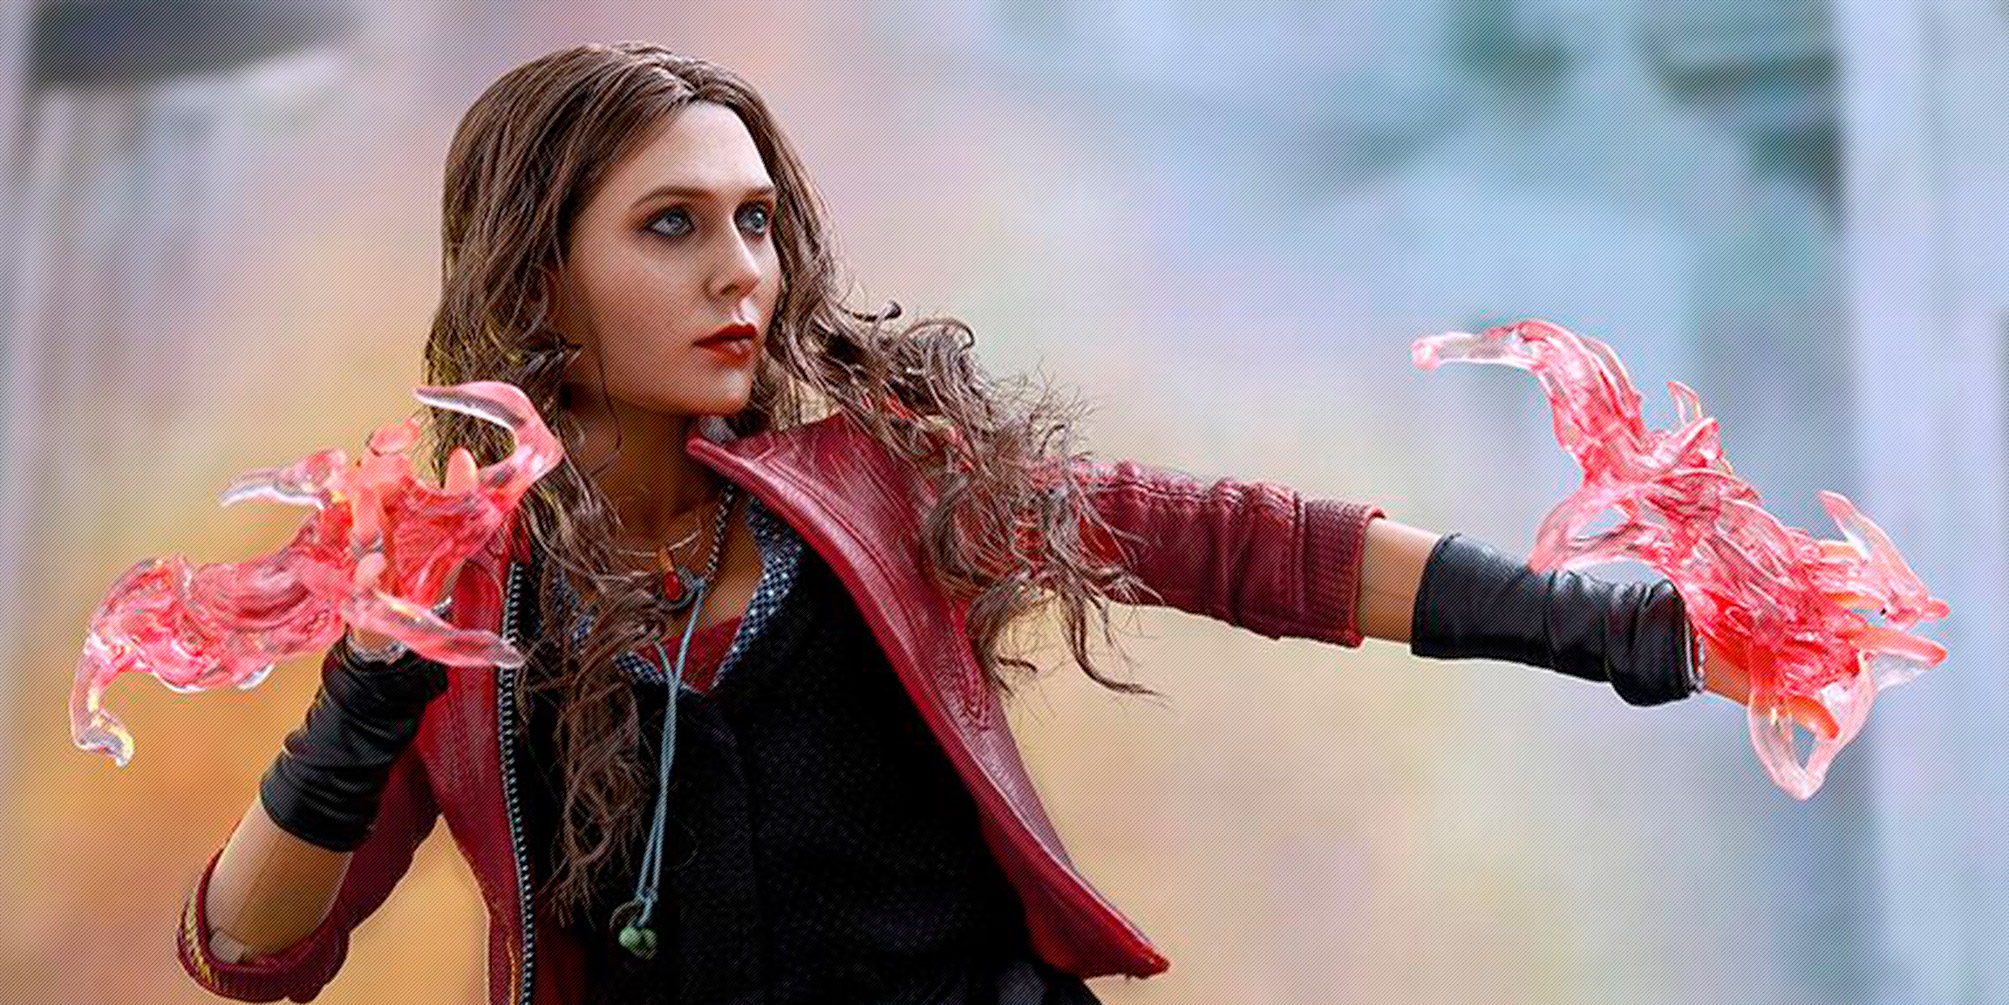 Films Avengers Age Of Ultron Elizabeth Olsen Scarlet Witch Wallpaper 2009x1005